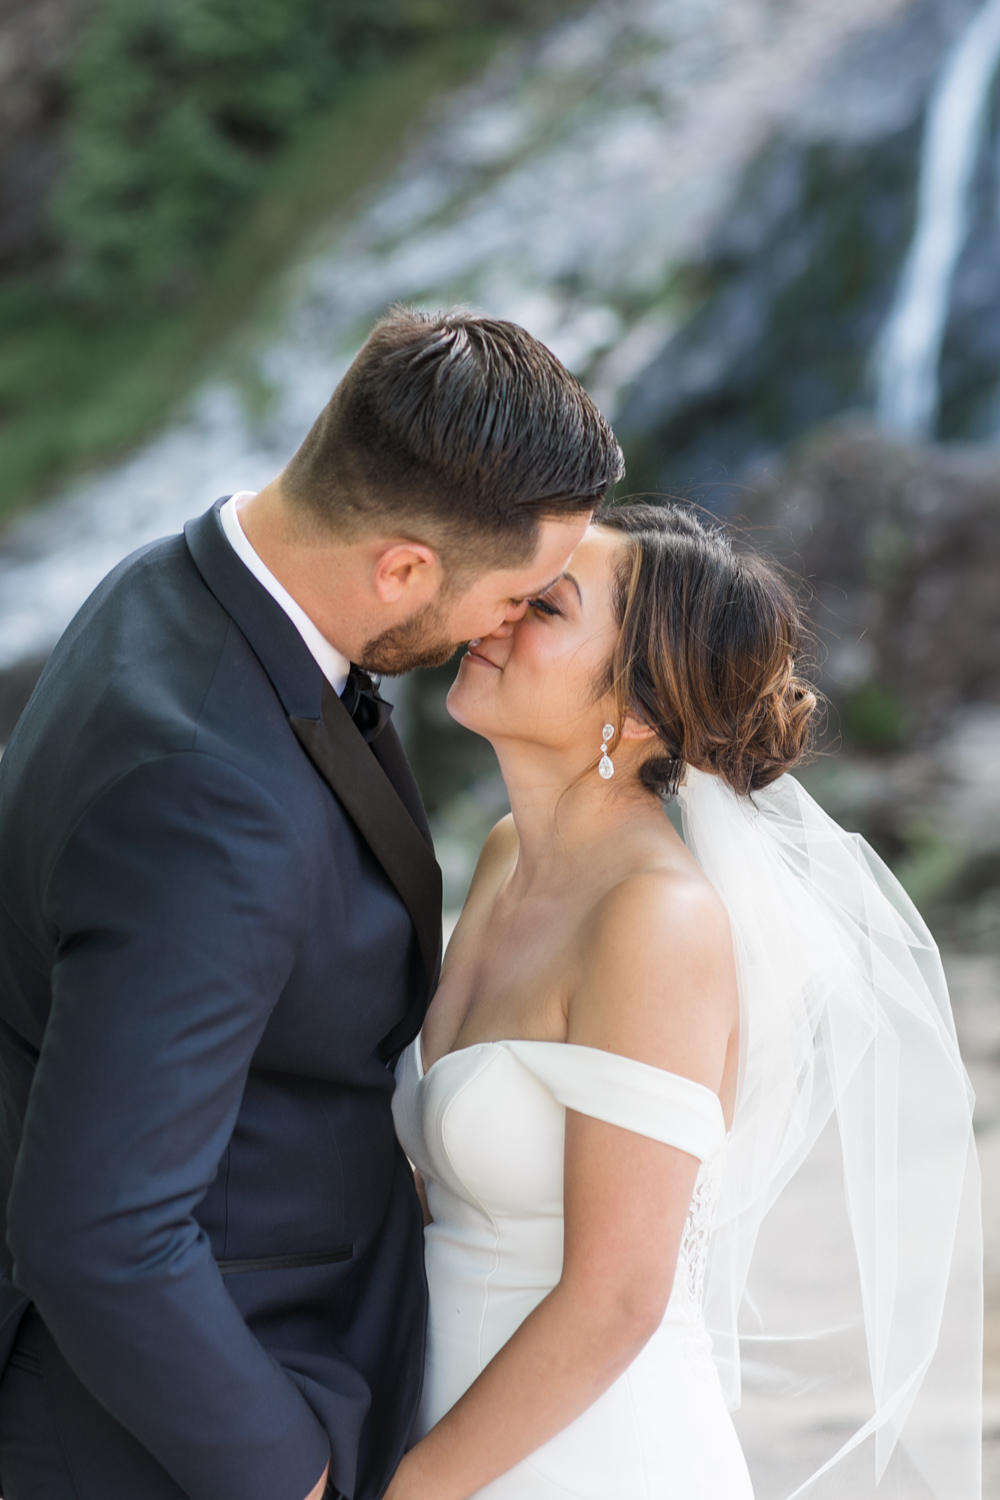 a close up shot of bride and groom nearly kissing each other groom wearing a black tie tux and bride wearing an off shoulder dress with a short veil